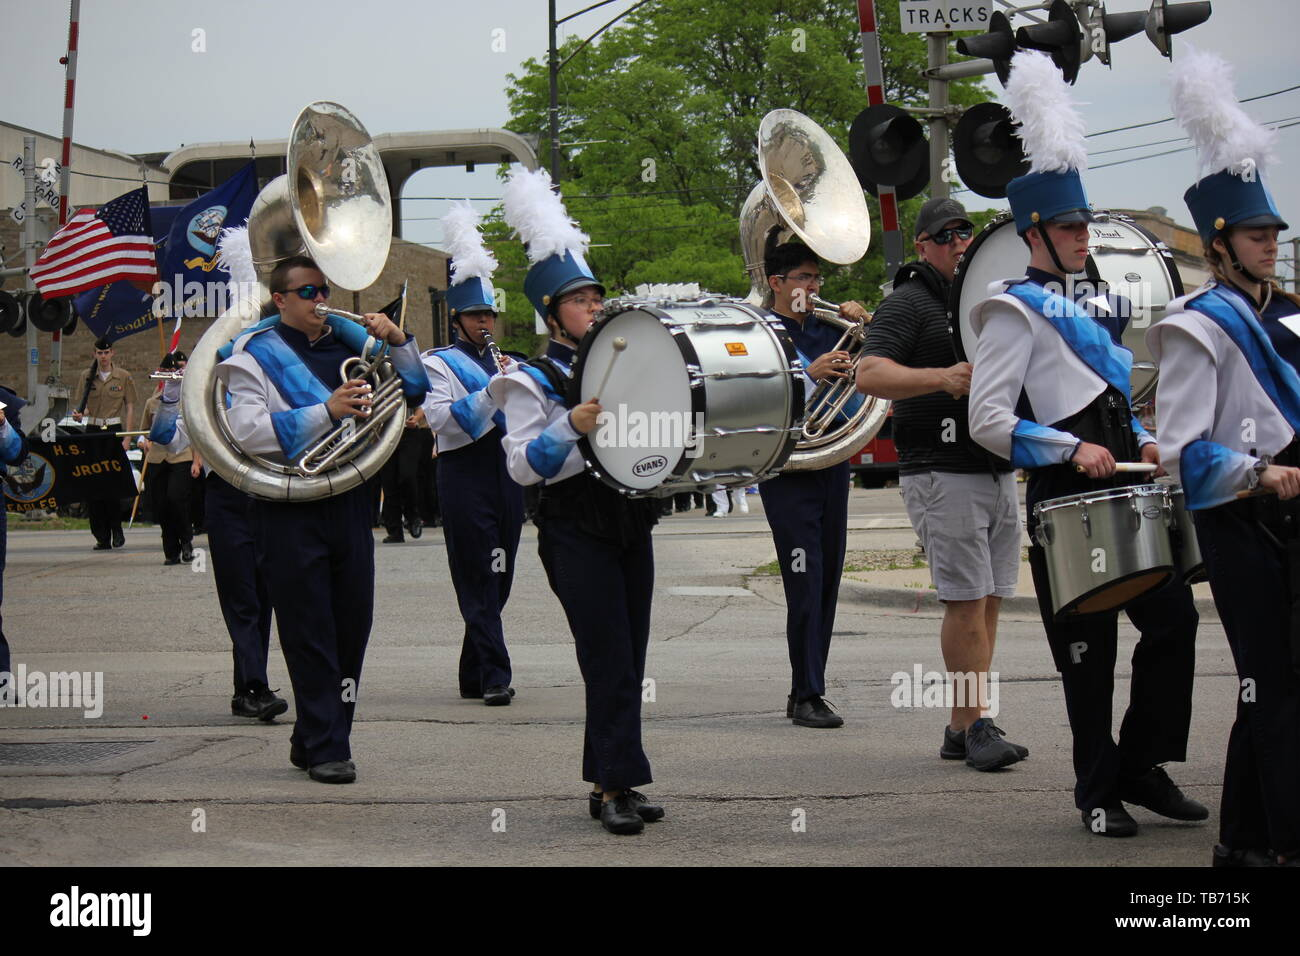 A local high school marching band playing in Chicago's Northwest side Memorial Day Parade. - Stock Image